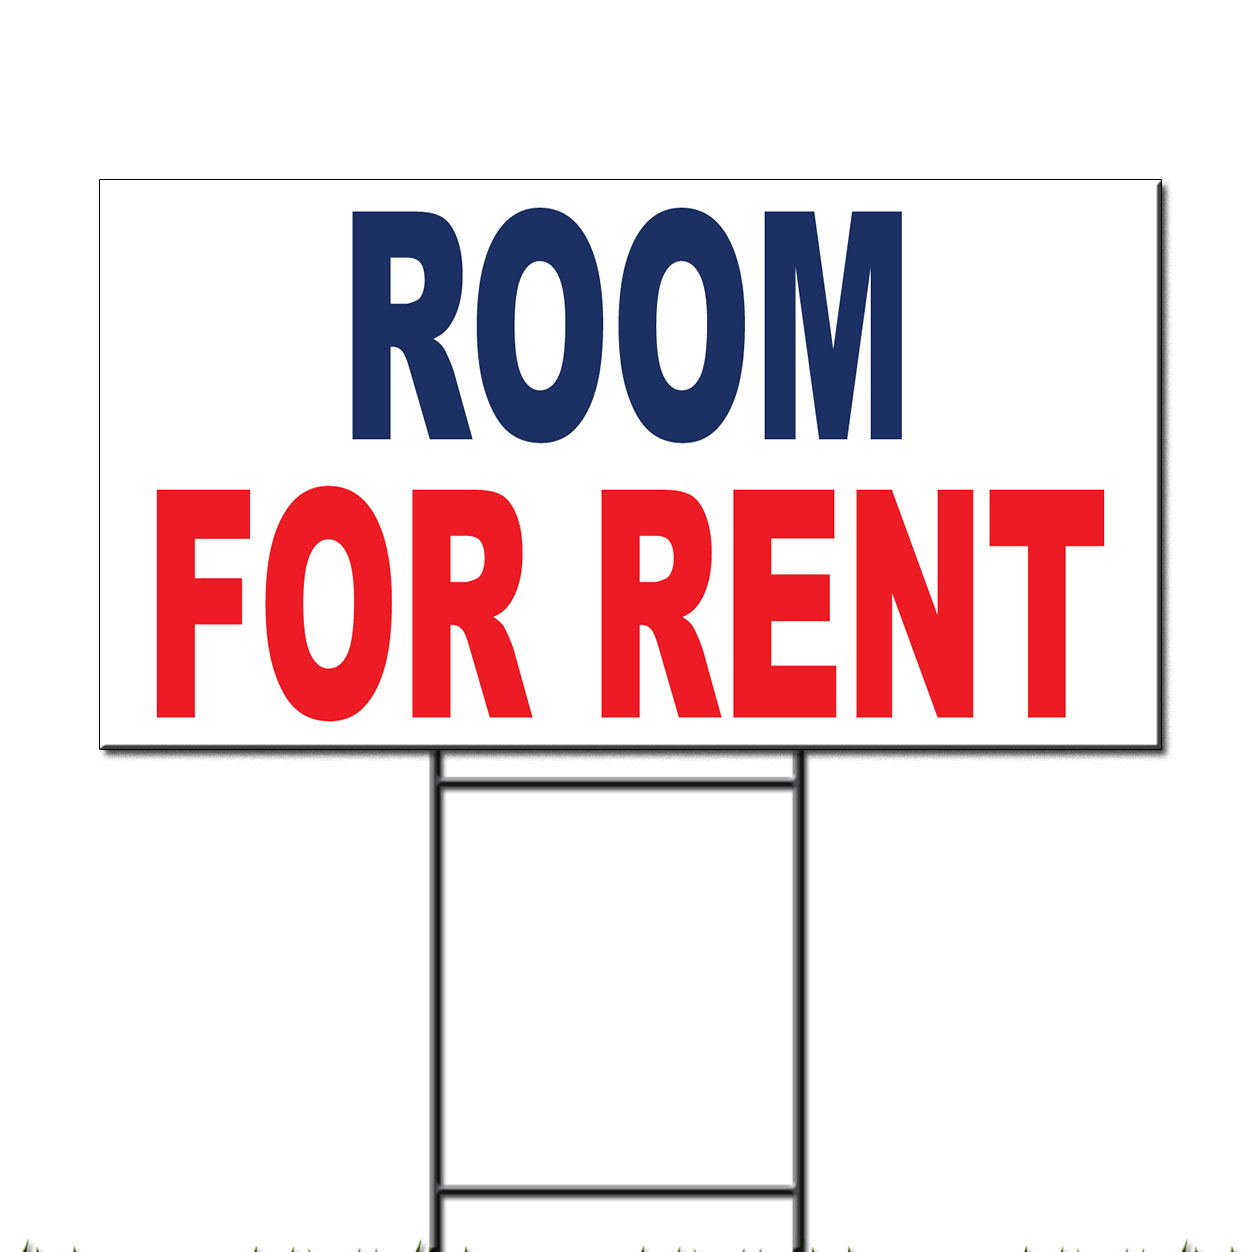 Room For Rent: Room For Rent Blue Red Corrugated Plastic Yard Sign /Free